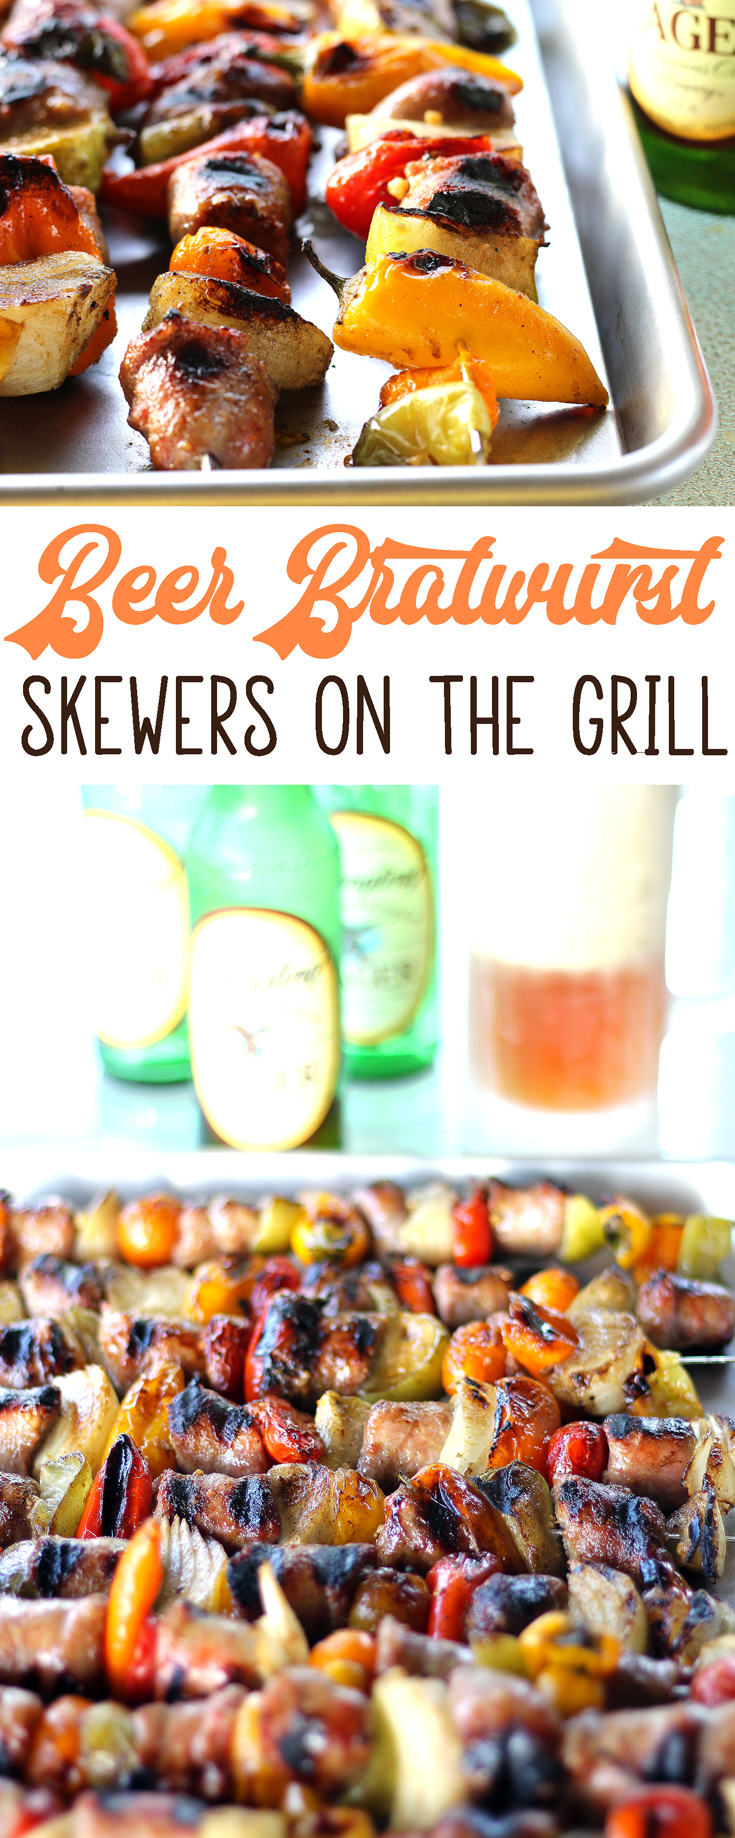 To make the most of your time with family and friends, I've got a huge piece of advice. Keep the food simple and delicious! We can't wait until you try these amazing Bold Beer Bratwurst Skewers on the Grill.